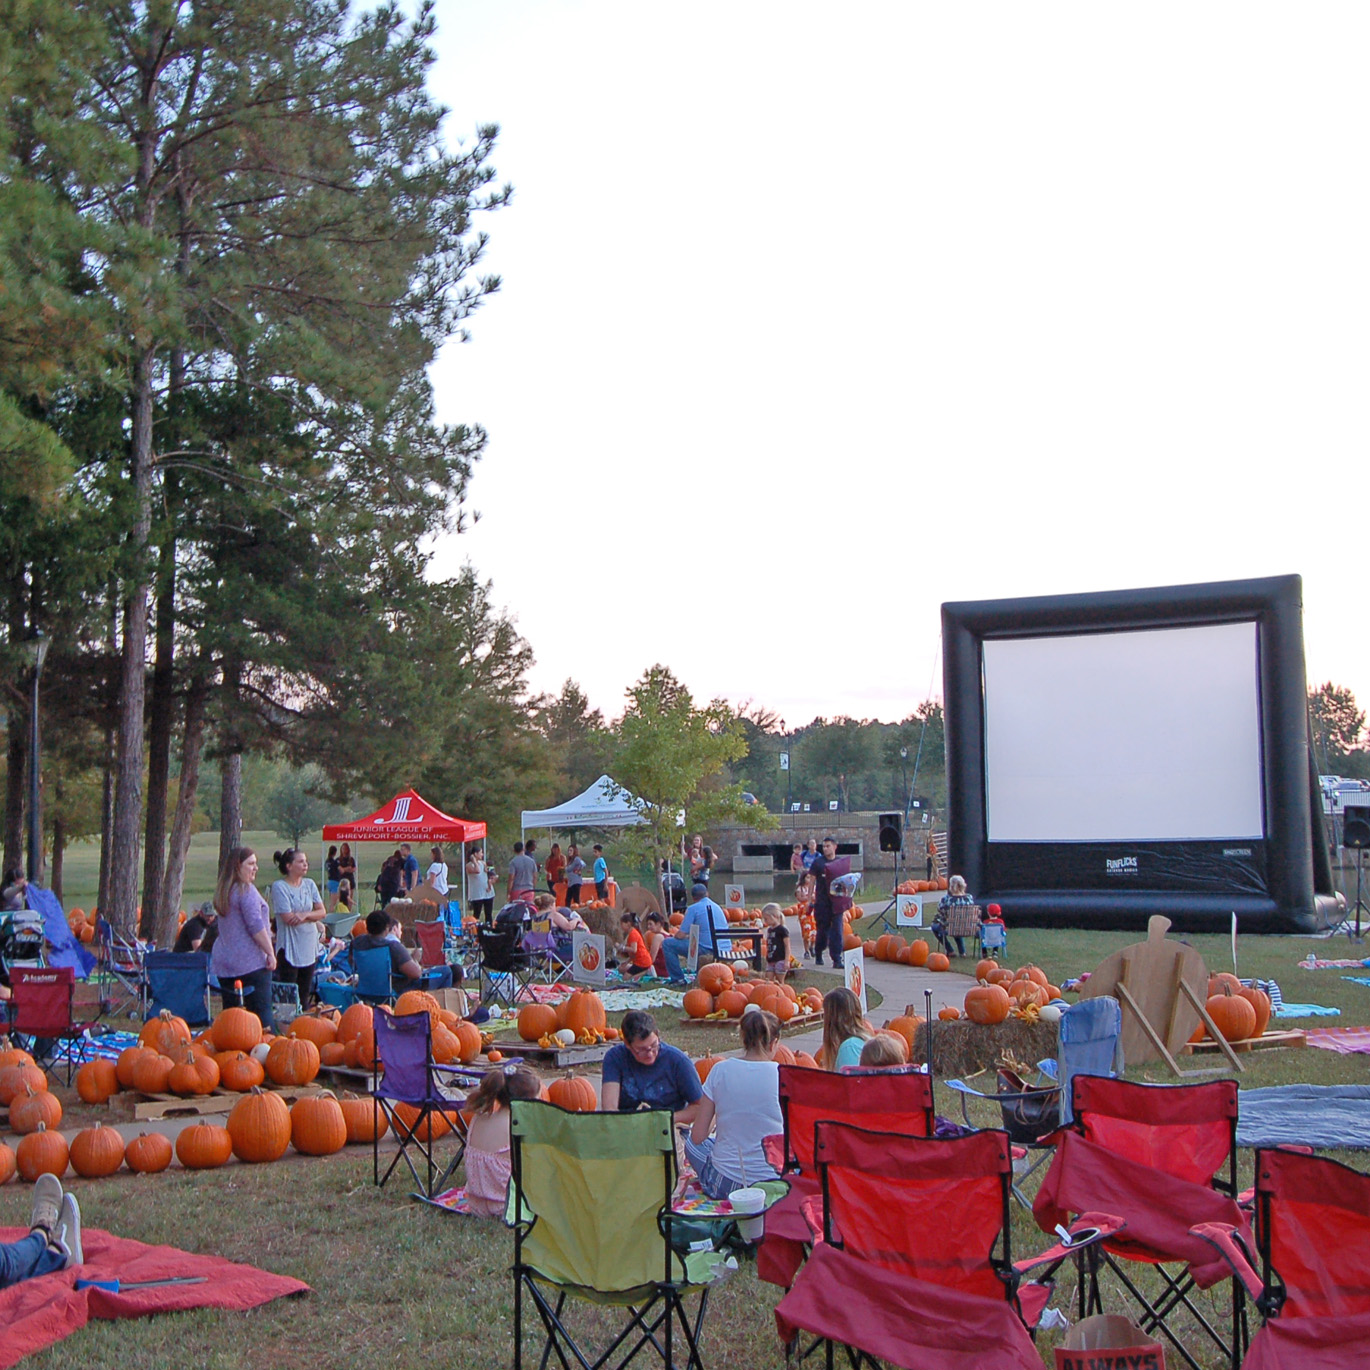 Movies in the Pumpkin Patch